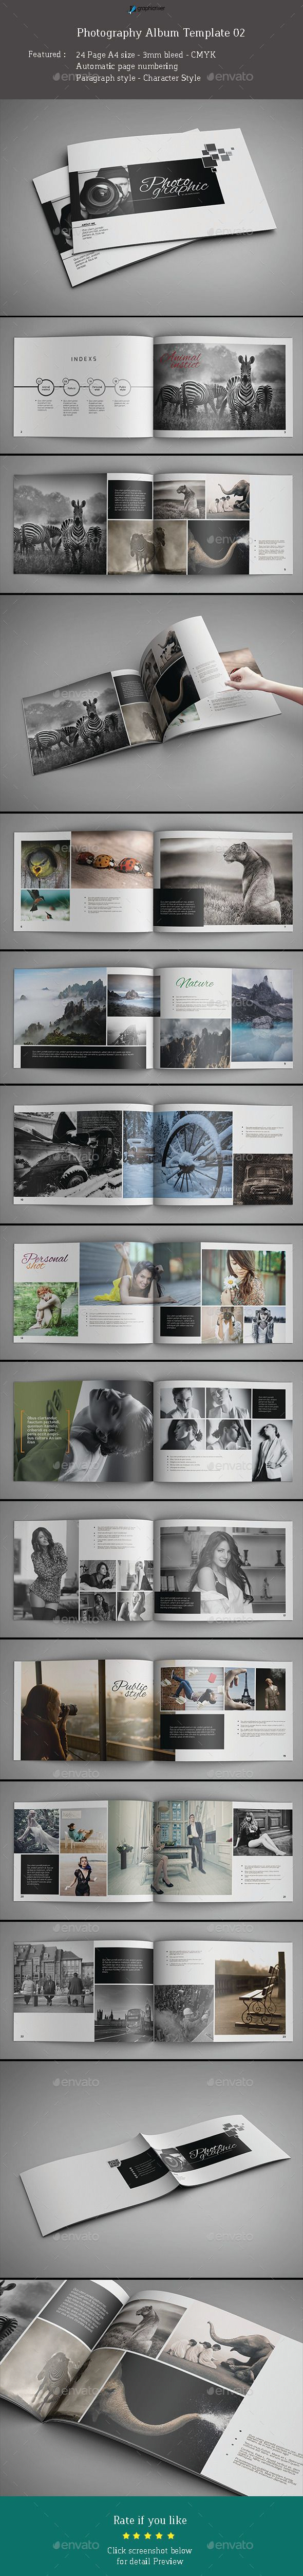 Photography Album Template #design #print Download: http://graphicriver.net/item/photography-album-template-02/11675839?ref=ksioks